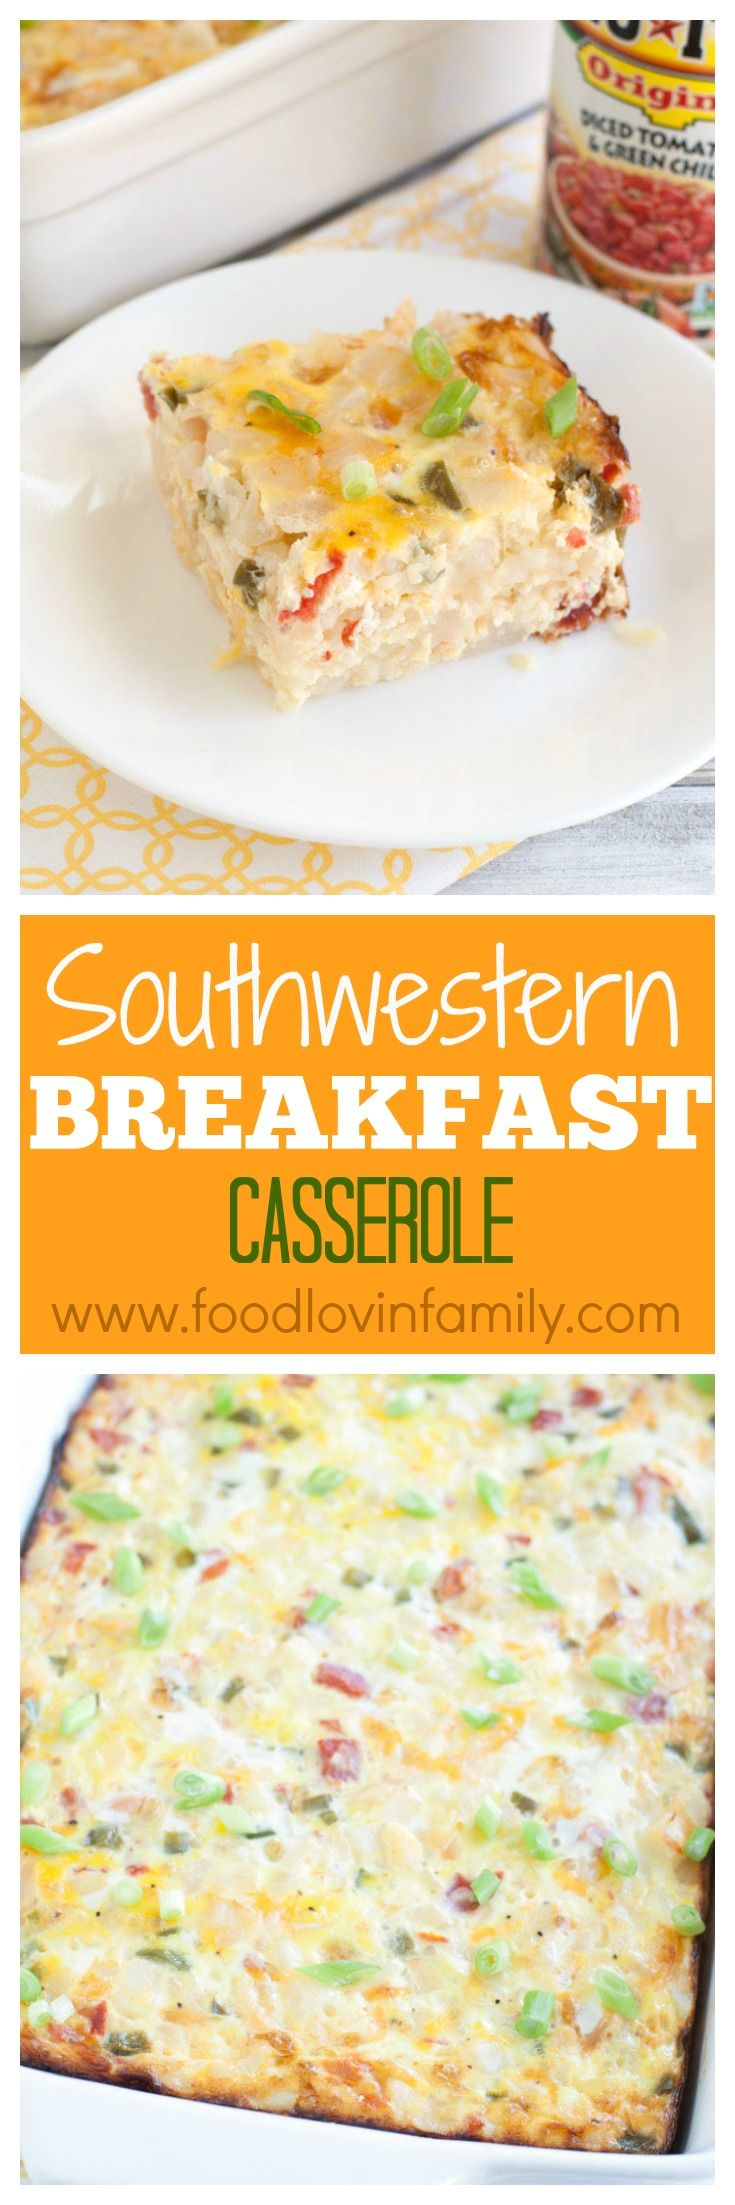 Southwestern Breakfast Casserole is a bold spin on breakfast. Packed full of flavor, made with RO*TEL, eggs, potatoes, green pepper and cheese. #ad #31DaysWithRotel   @ro_tel @walmart @roteltomatoes